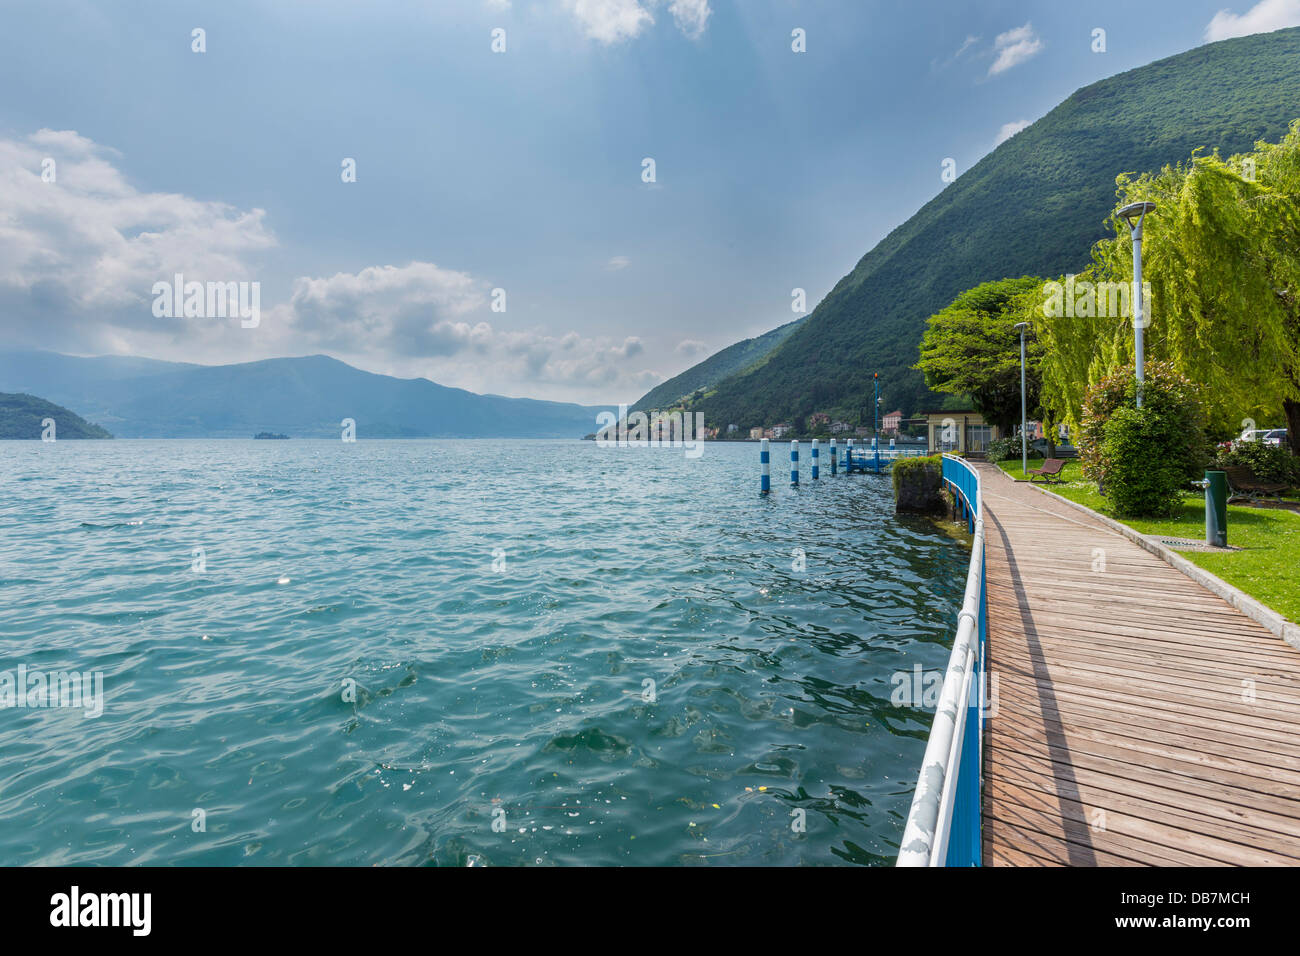 Waterfront on Lake Iseo or Lago d'Iseo - Stock Image